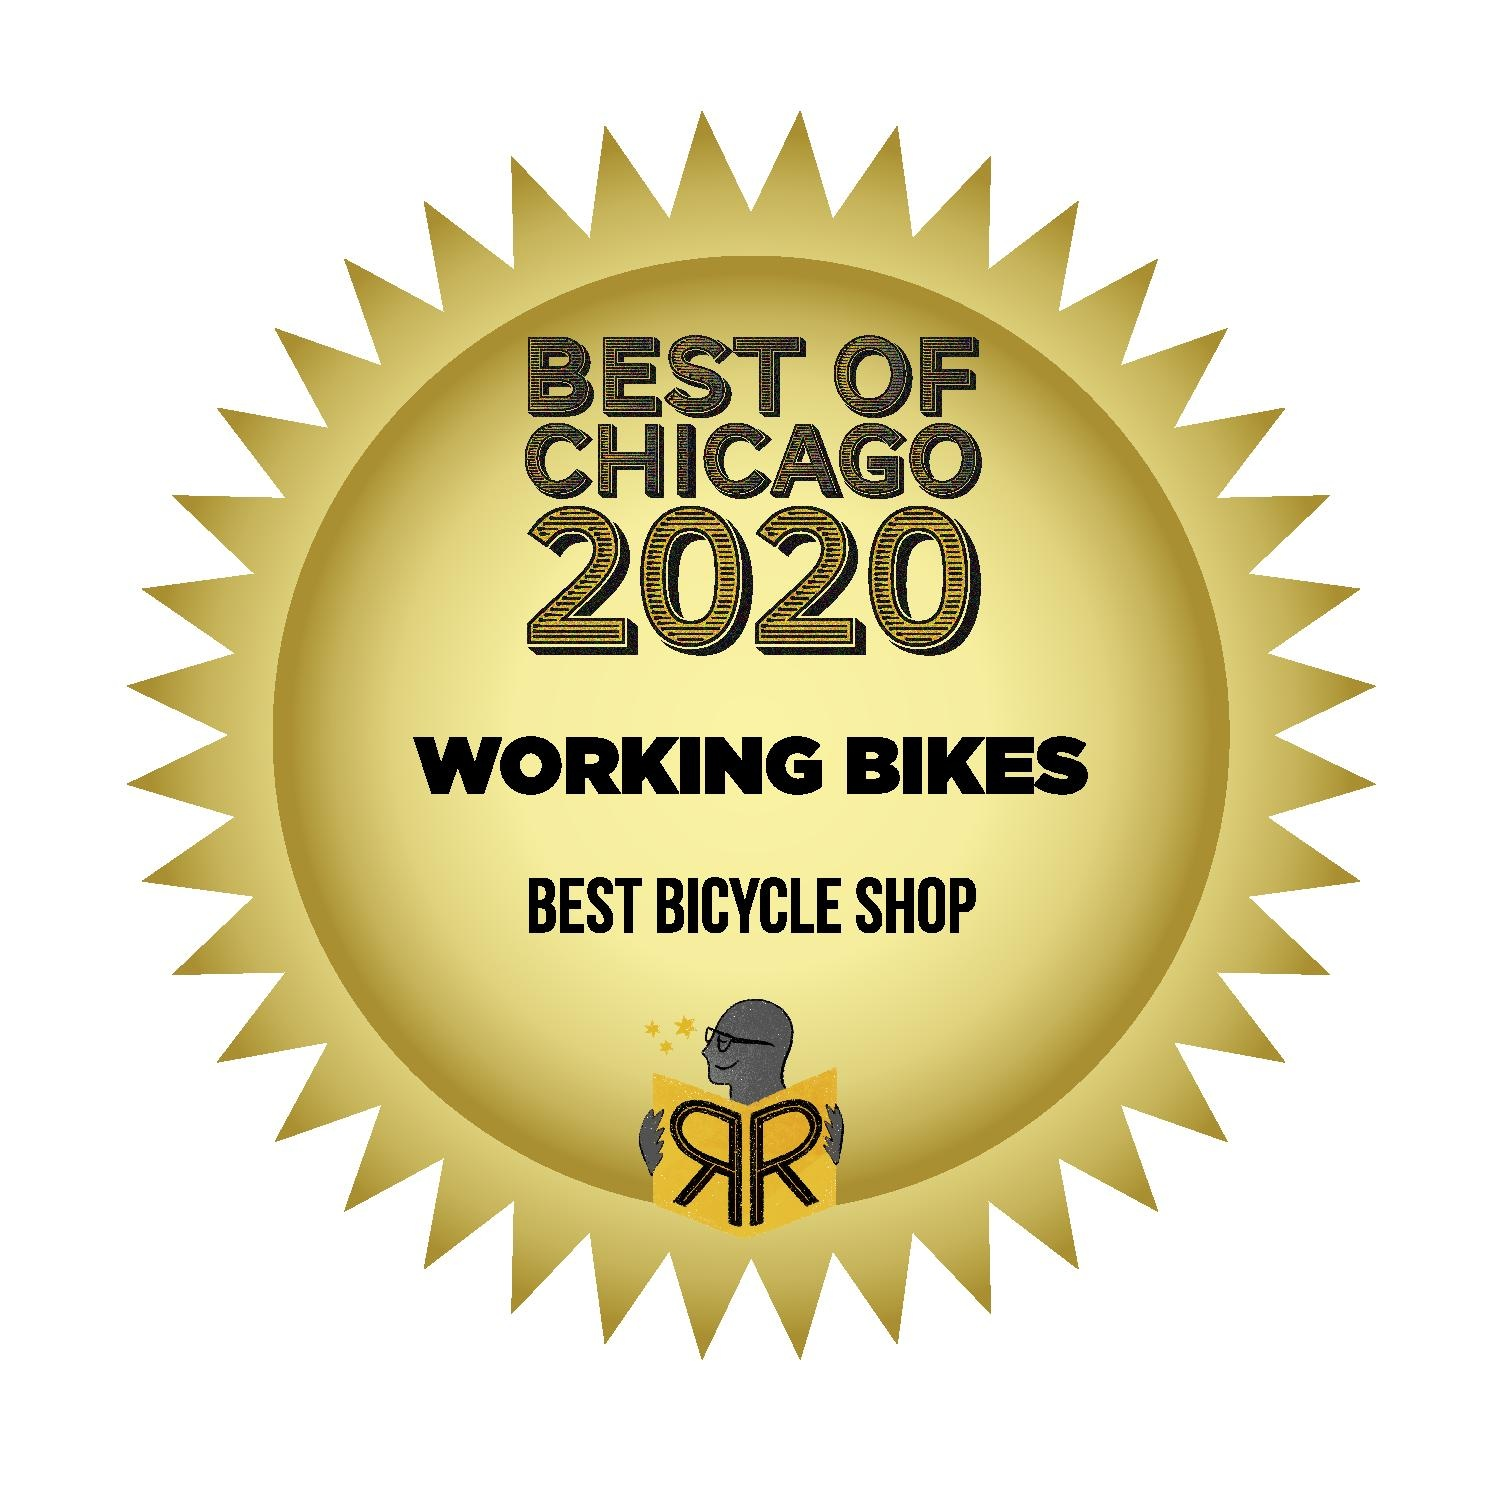 Best Bicycle Shop in Chicago 2020 Badge